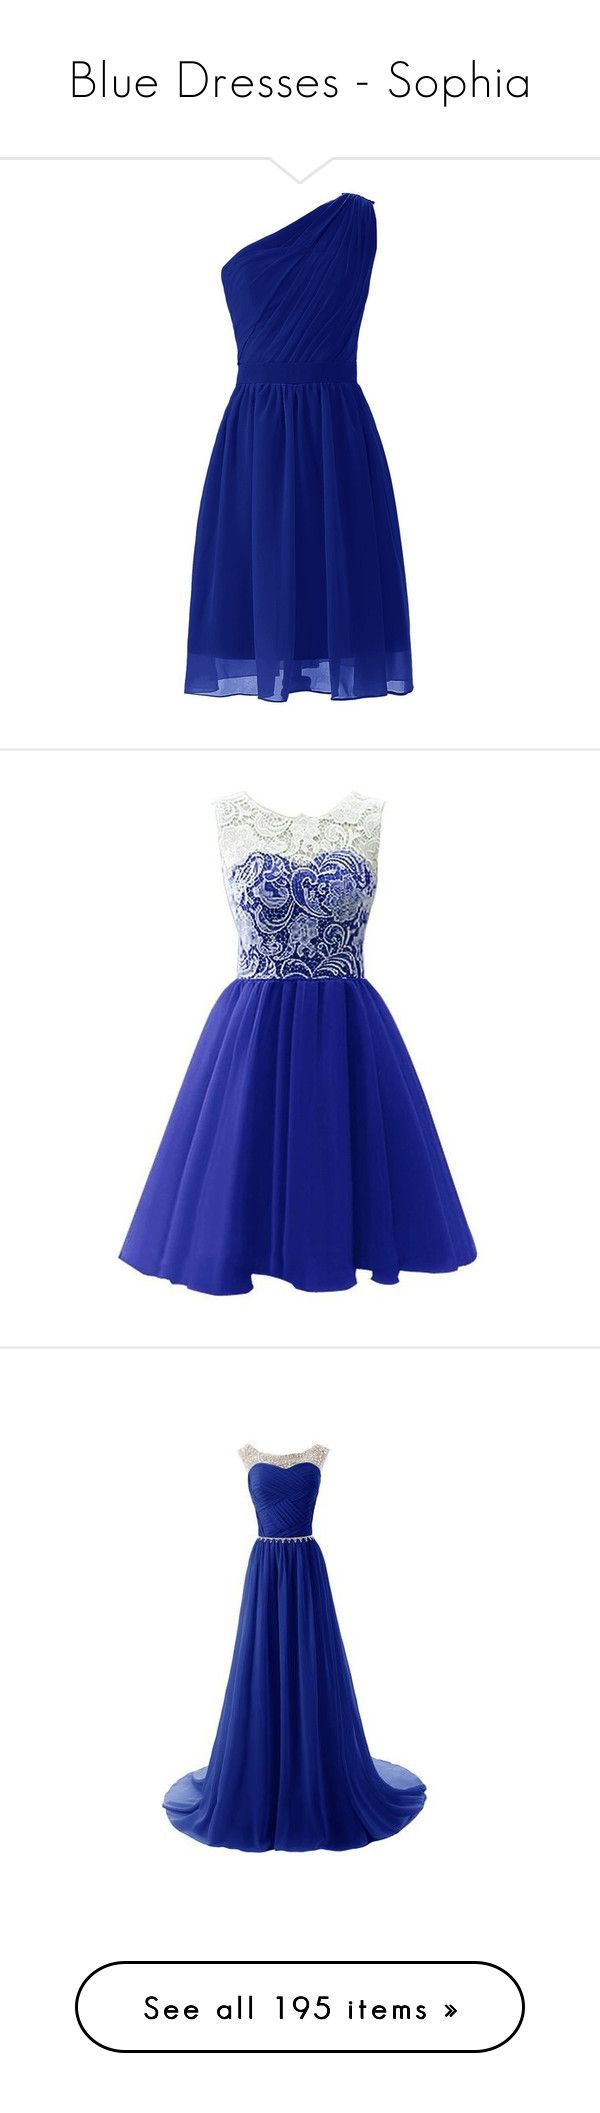 """Blue Dresses - Sophia"" by notaliice-riley ❤ liked on Polyvore featuring dresses, vestidos, short dresses, short homecoming dresses, one shoulder dress, blue one shoulder dress, blue bridesmaid dresses, short cocktail dresses, cocktail party dress and lace prom dresses"